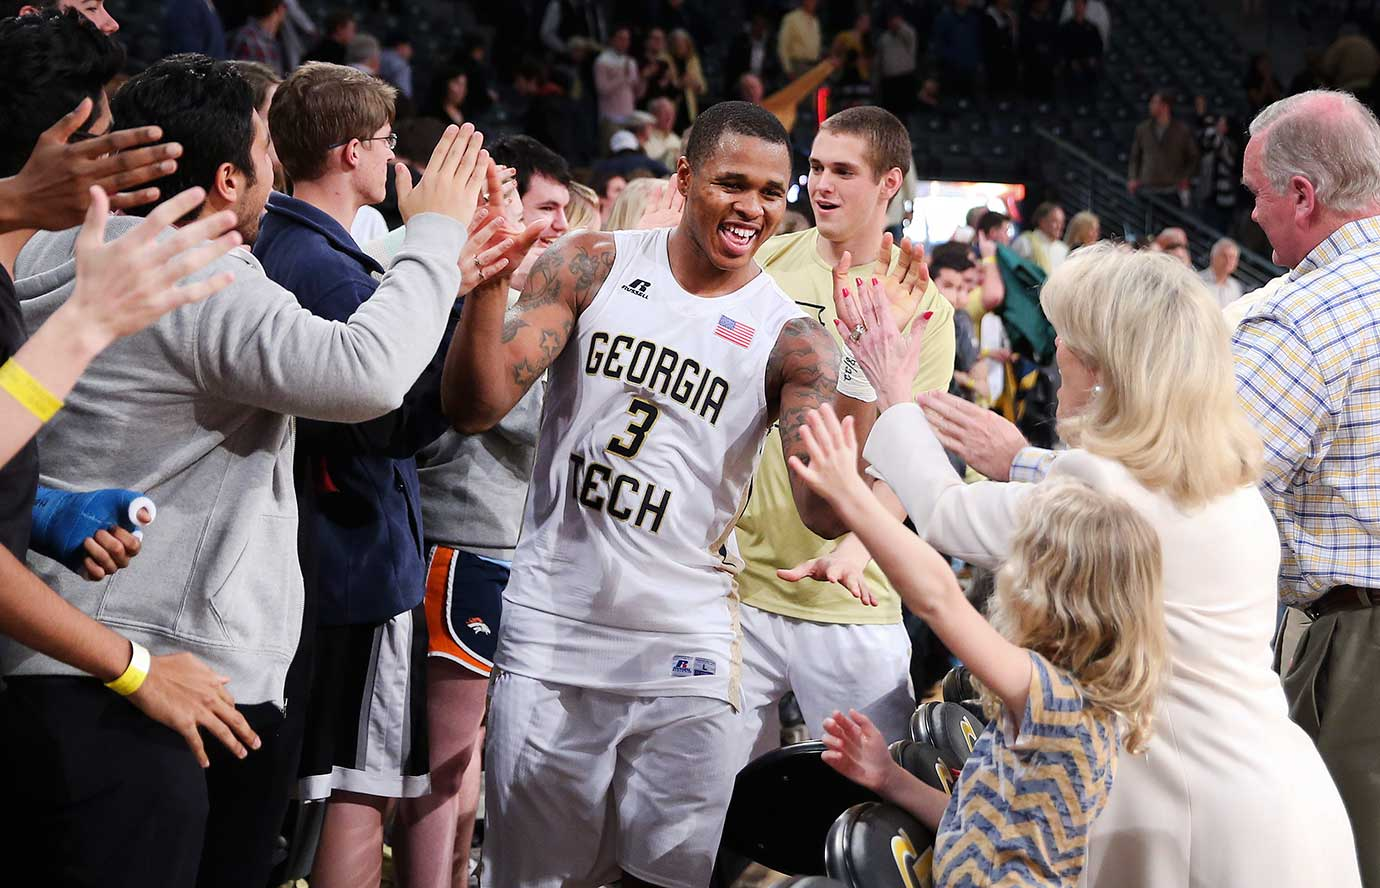 Marcus Georges-Hunt celebrates with fans after Georgia Tech won another close game, this one 75-73 over Clemson.